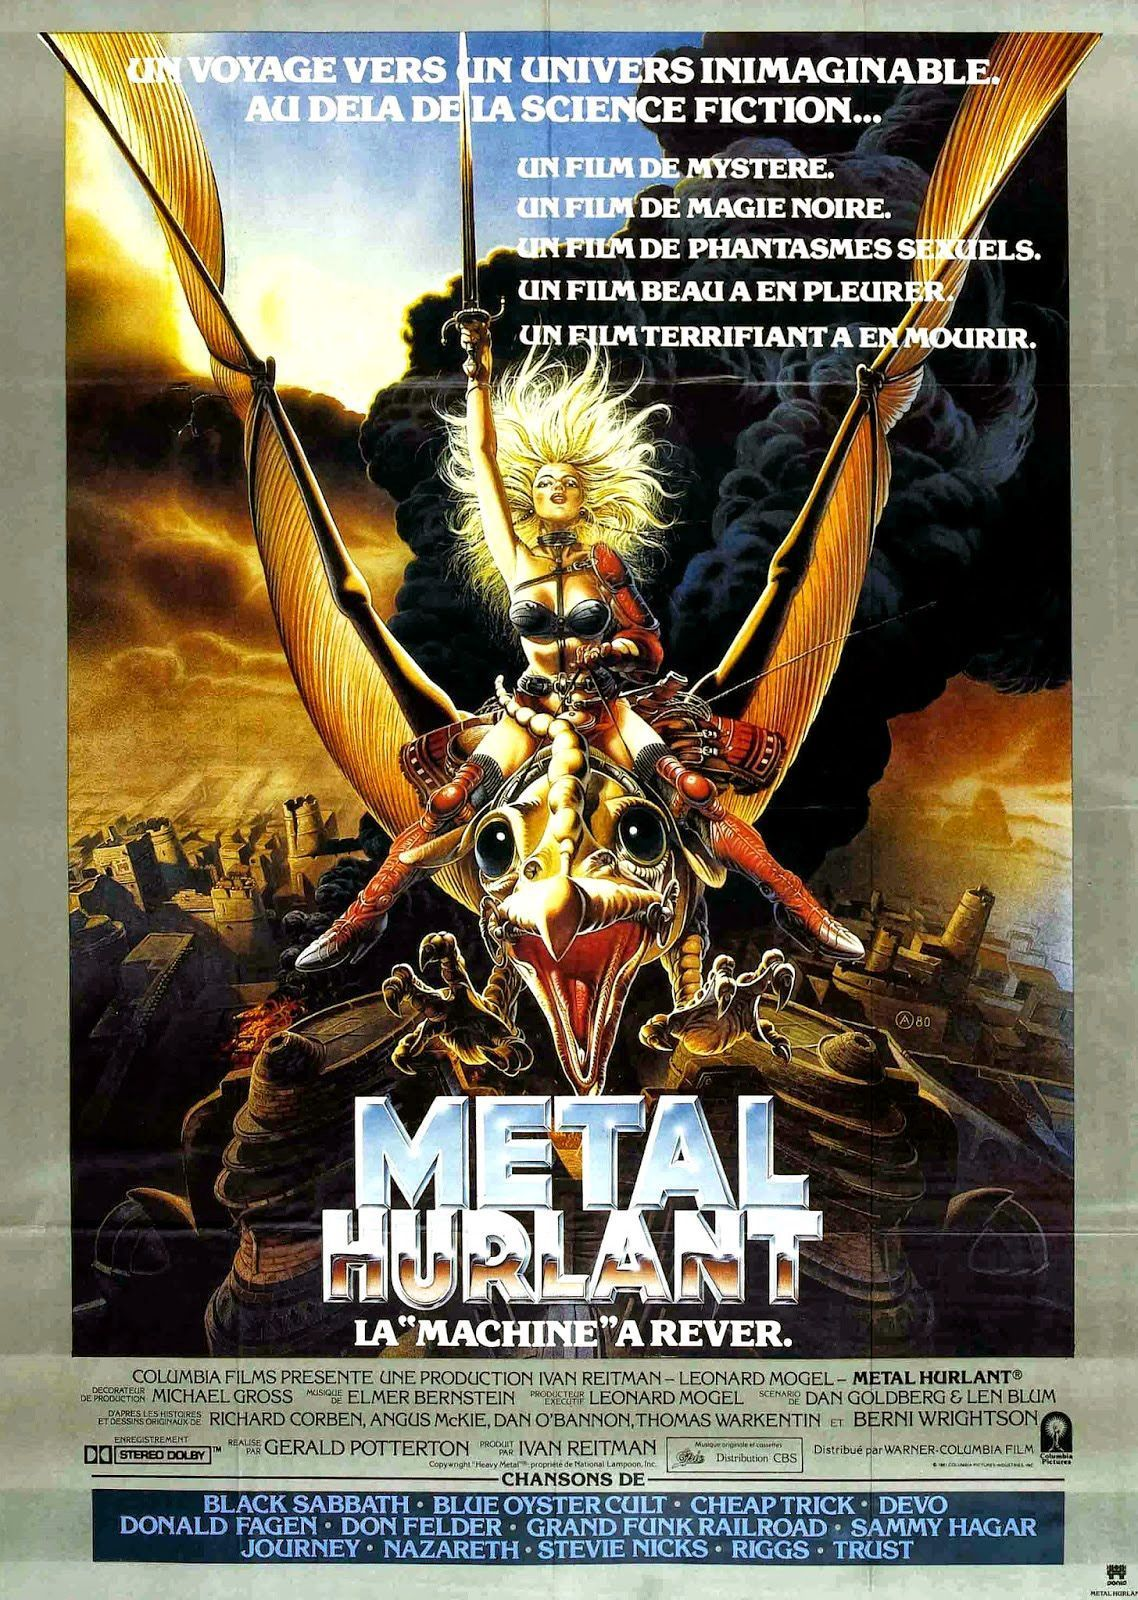 film d'animation canadien de 1981